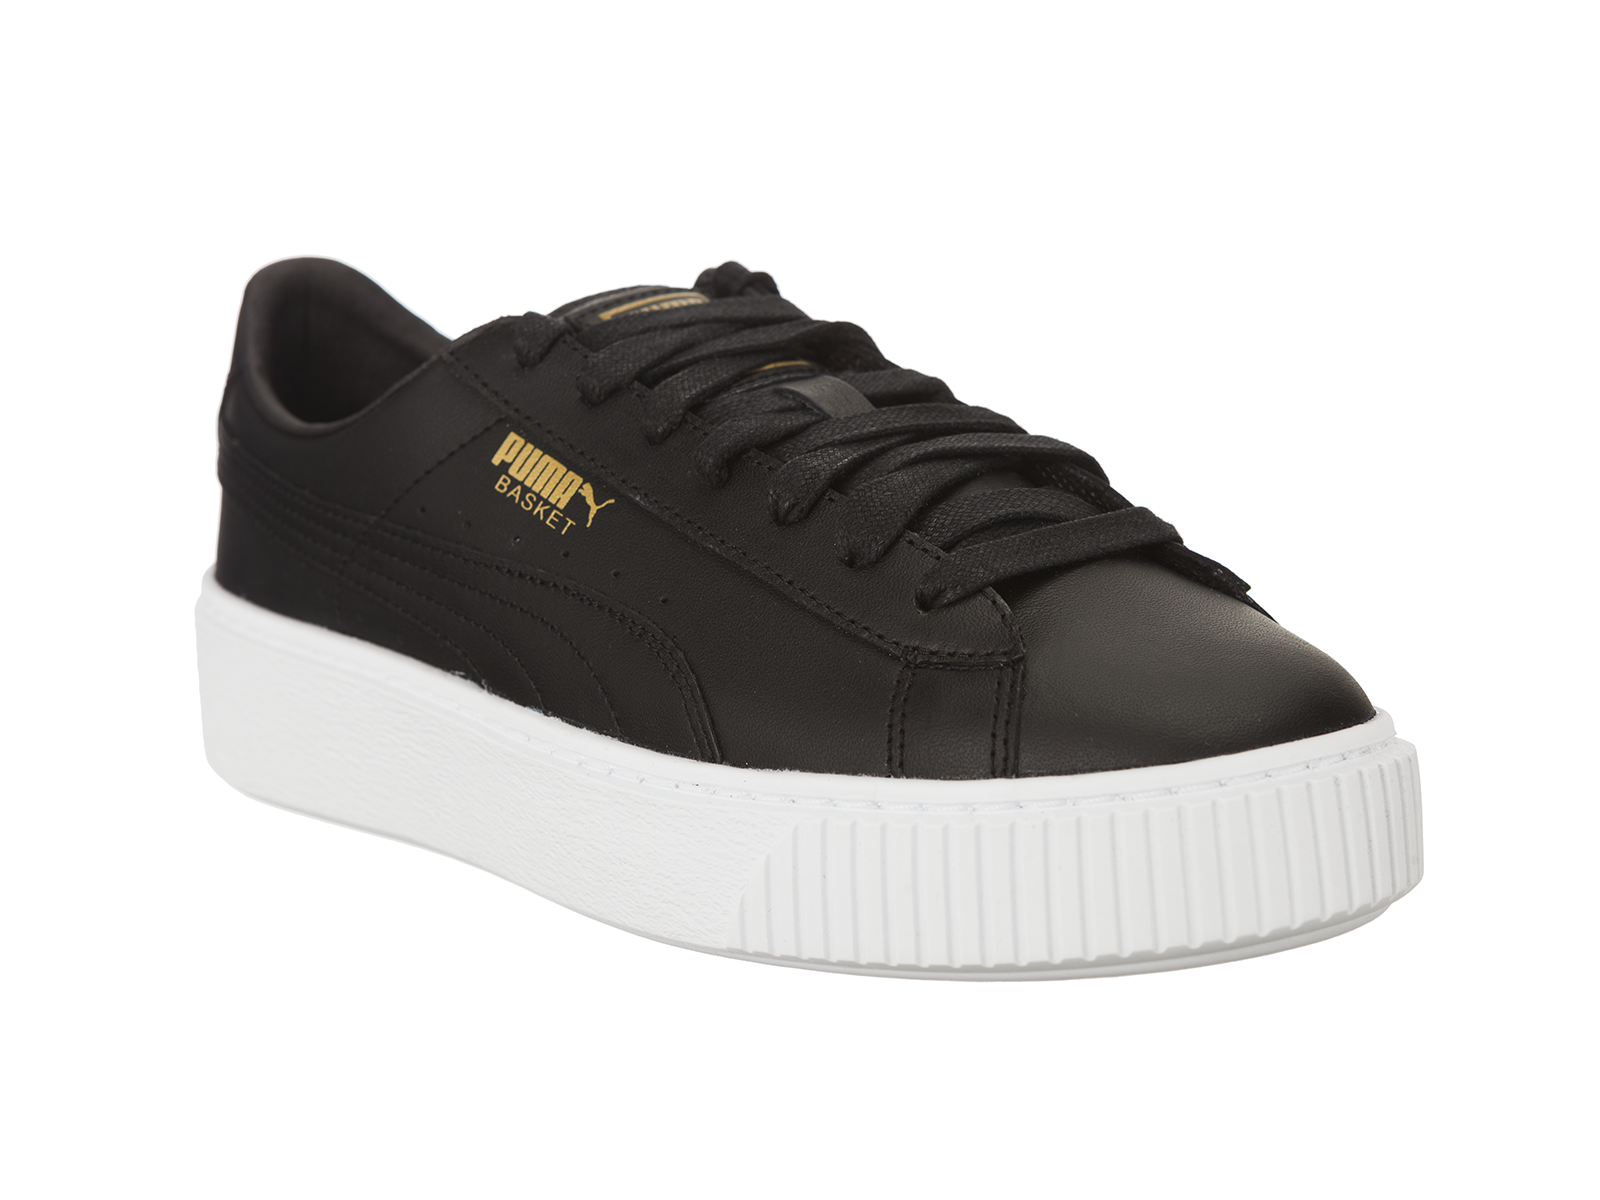 puma basket plattform damen sneaker plateau turnschuhe freizeit sportschuhe ebay. Black Bedroom Furniture Sets. Home Design Ideas